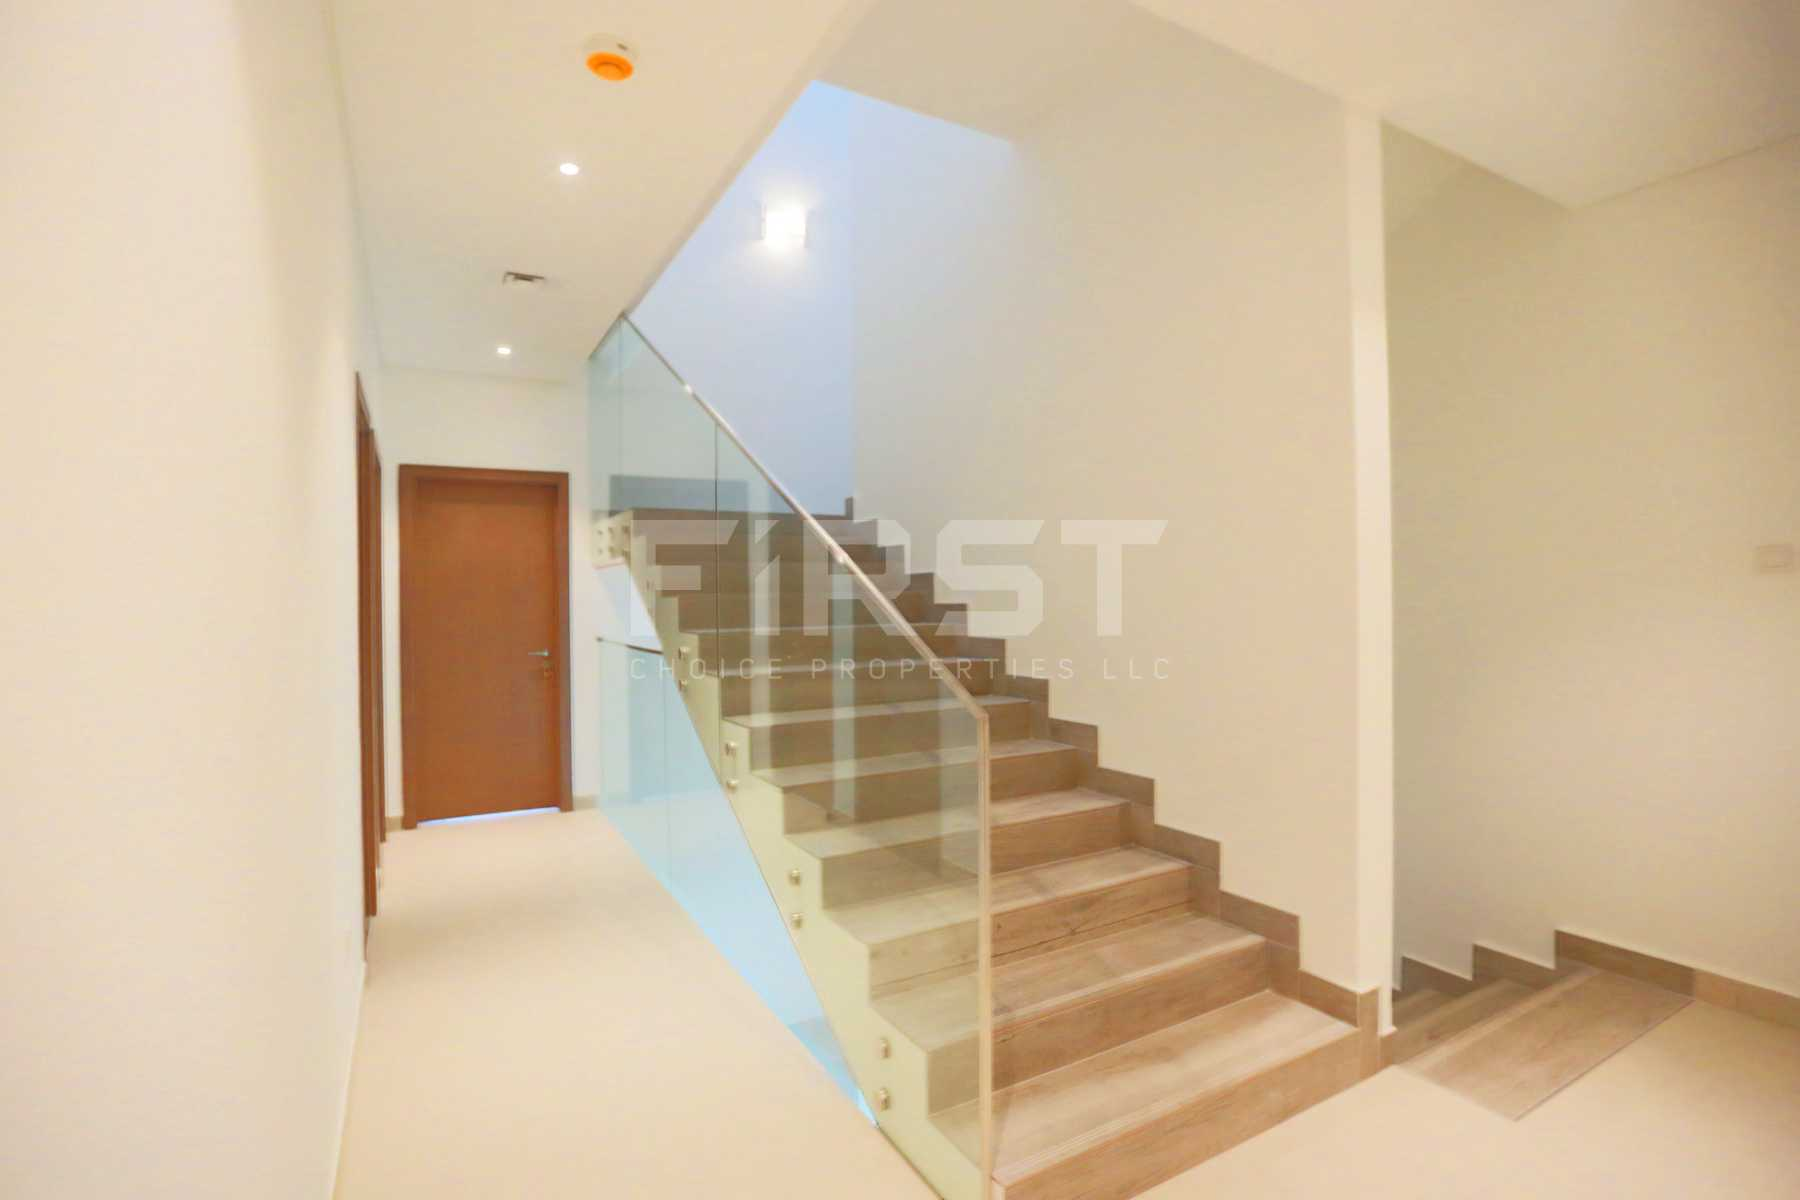 Internal Photo of 5 Bedroom Villa in Faya at Bloom Gardens Al Salam Street Abu Dhabi UAE (12).jpg